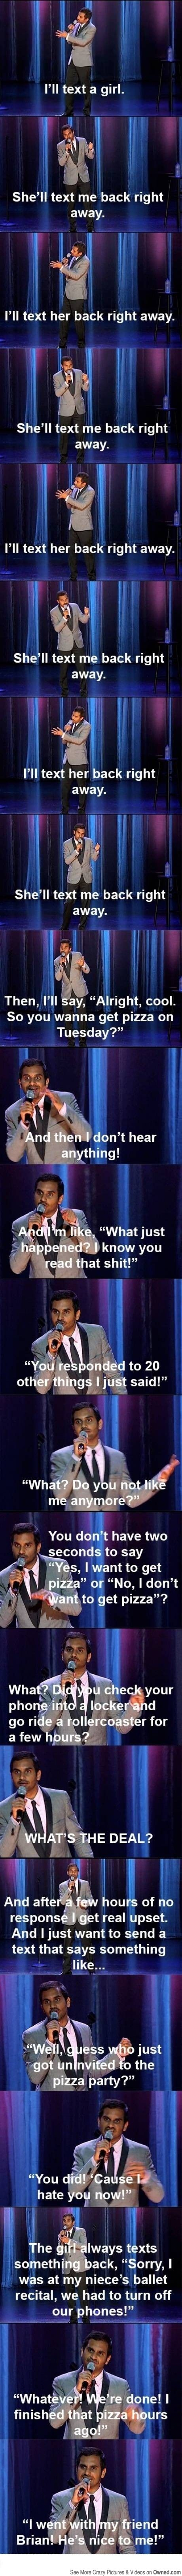 Modern dating problems with Aziz Ansari. This is great!